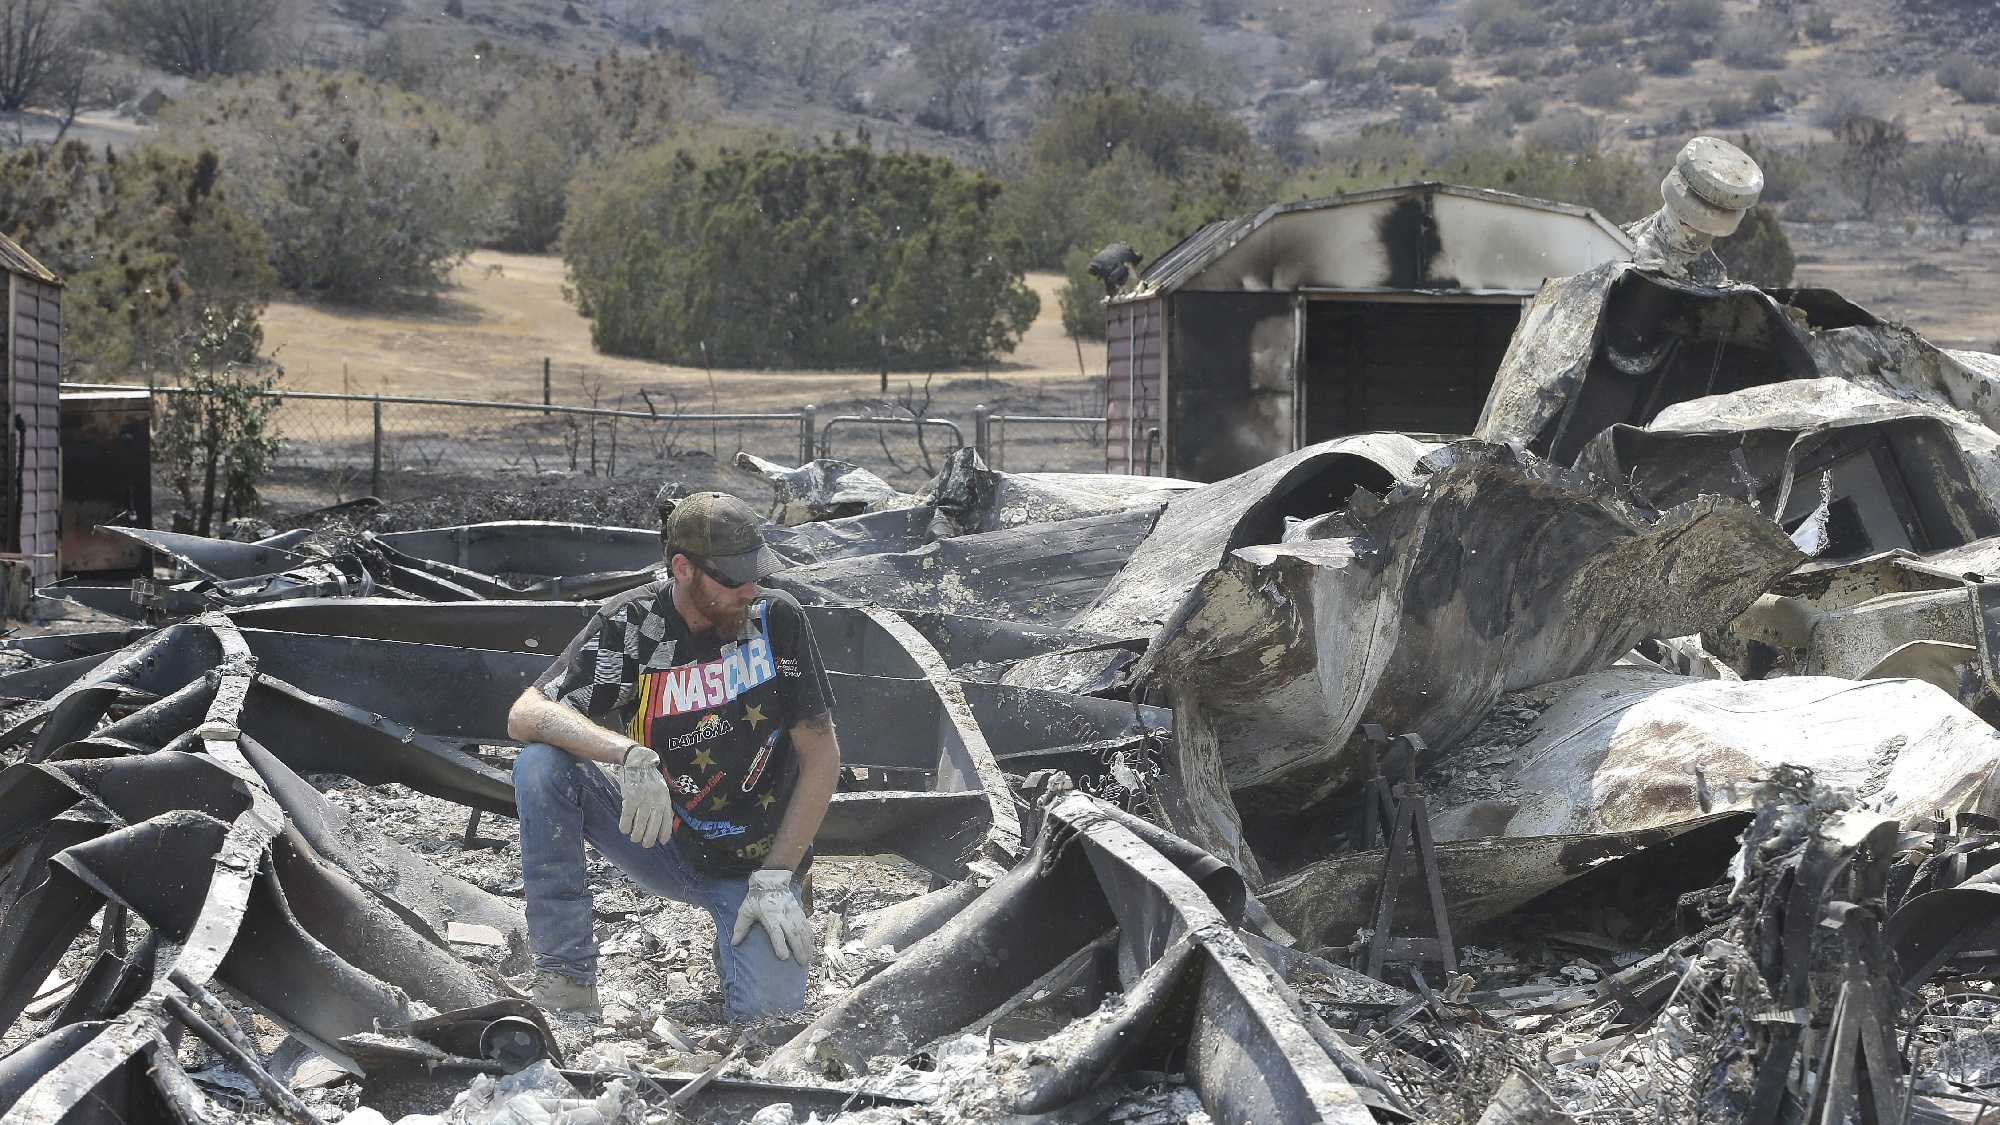 Lucas Martin stares at all that remains of his fire ravaged home in South Lake, Calif., Sunday, June 26, 2016. Martin's home was among the more than 200 homes and buildings destroyed by the fire that swept through the area near Lake Isabella, Calif.